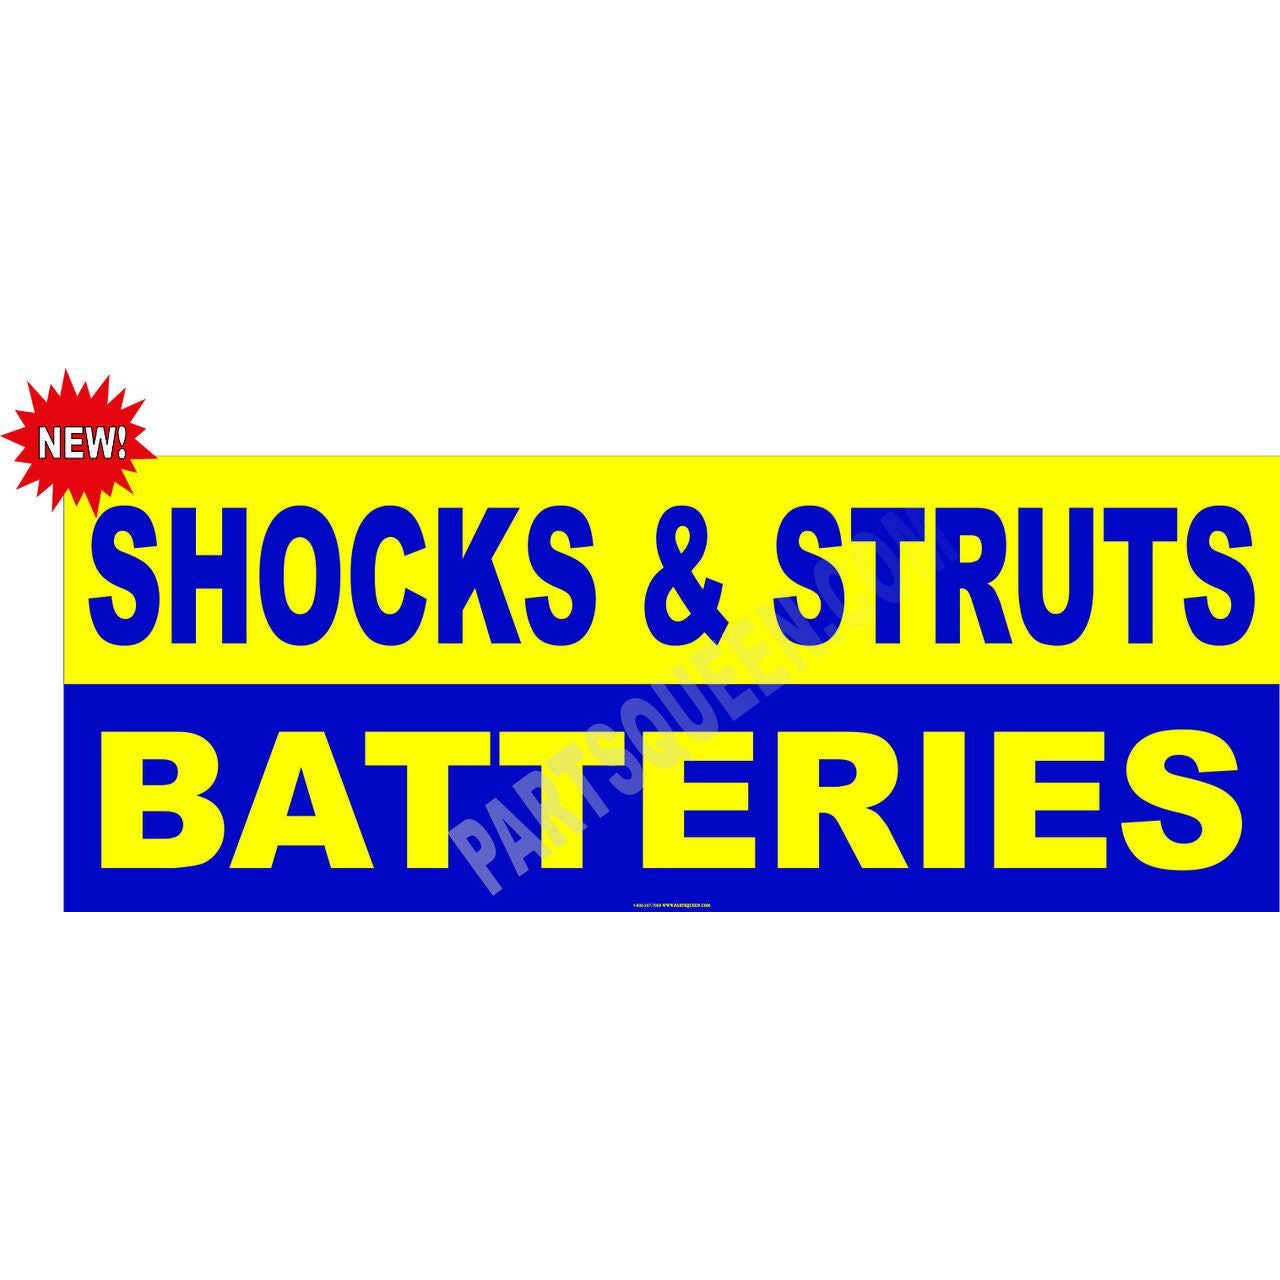 SHOCKS STRUTS BATTERIES BANNER AB208